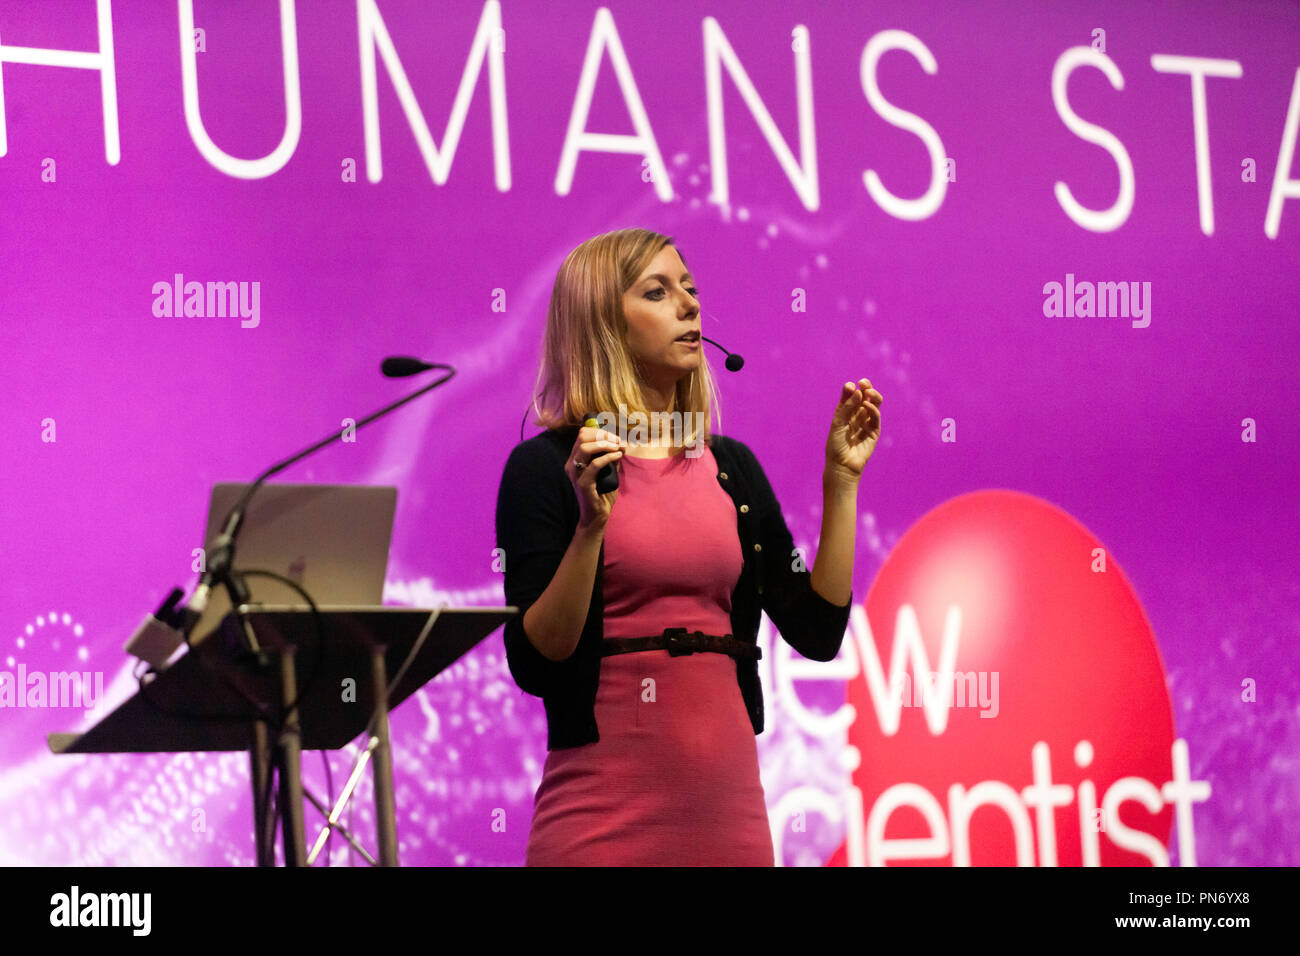 Flavia Mancini  presenting a talk entitled 'Preventing and overcoming chronic pain', on the Humans Stage, at New Scientist Live 2018 - Stock Image